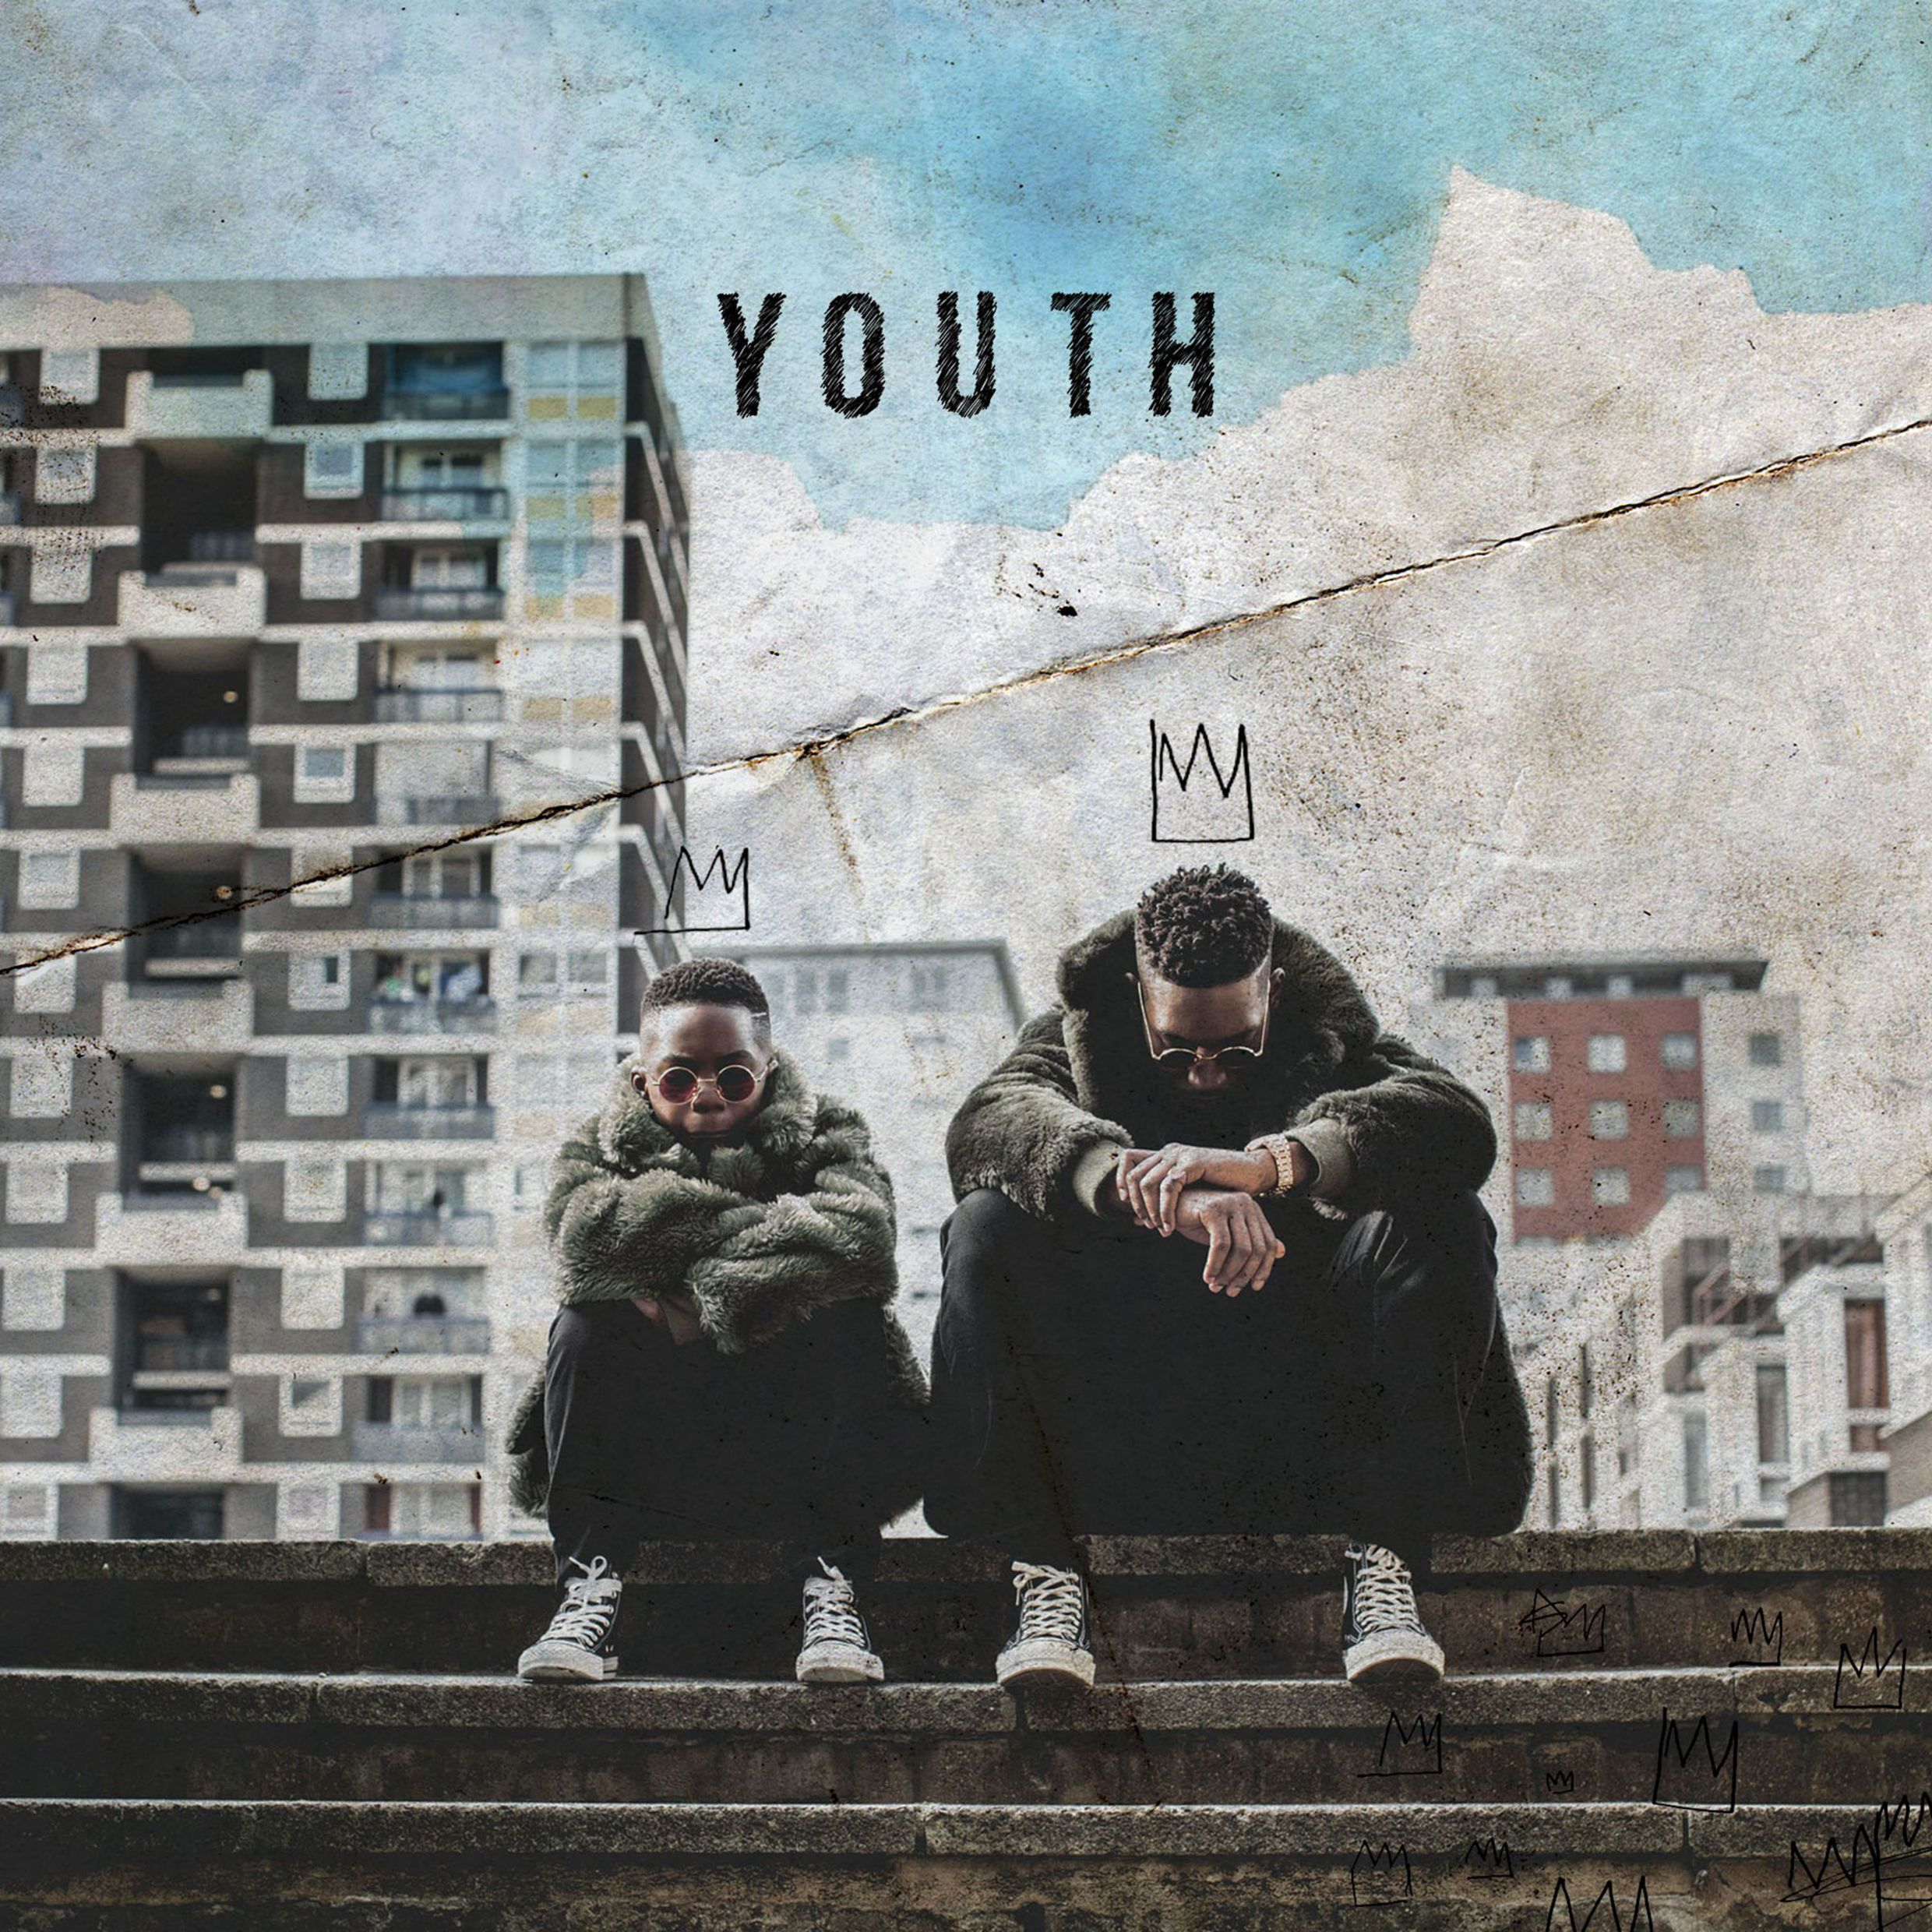 Tinie Tempah Youth Http Aftersounds Foroactivo Com T16246 Tinie Tempah Album Youth 3368378 Tinie Tempah Tinnie Tempah British Rappers